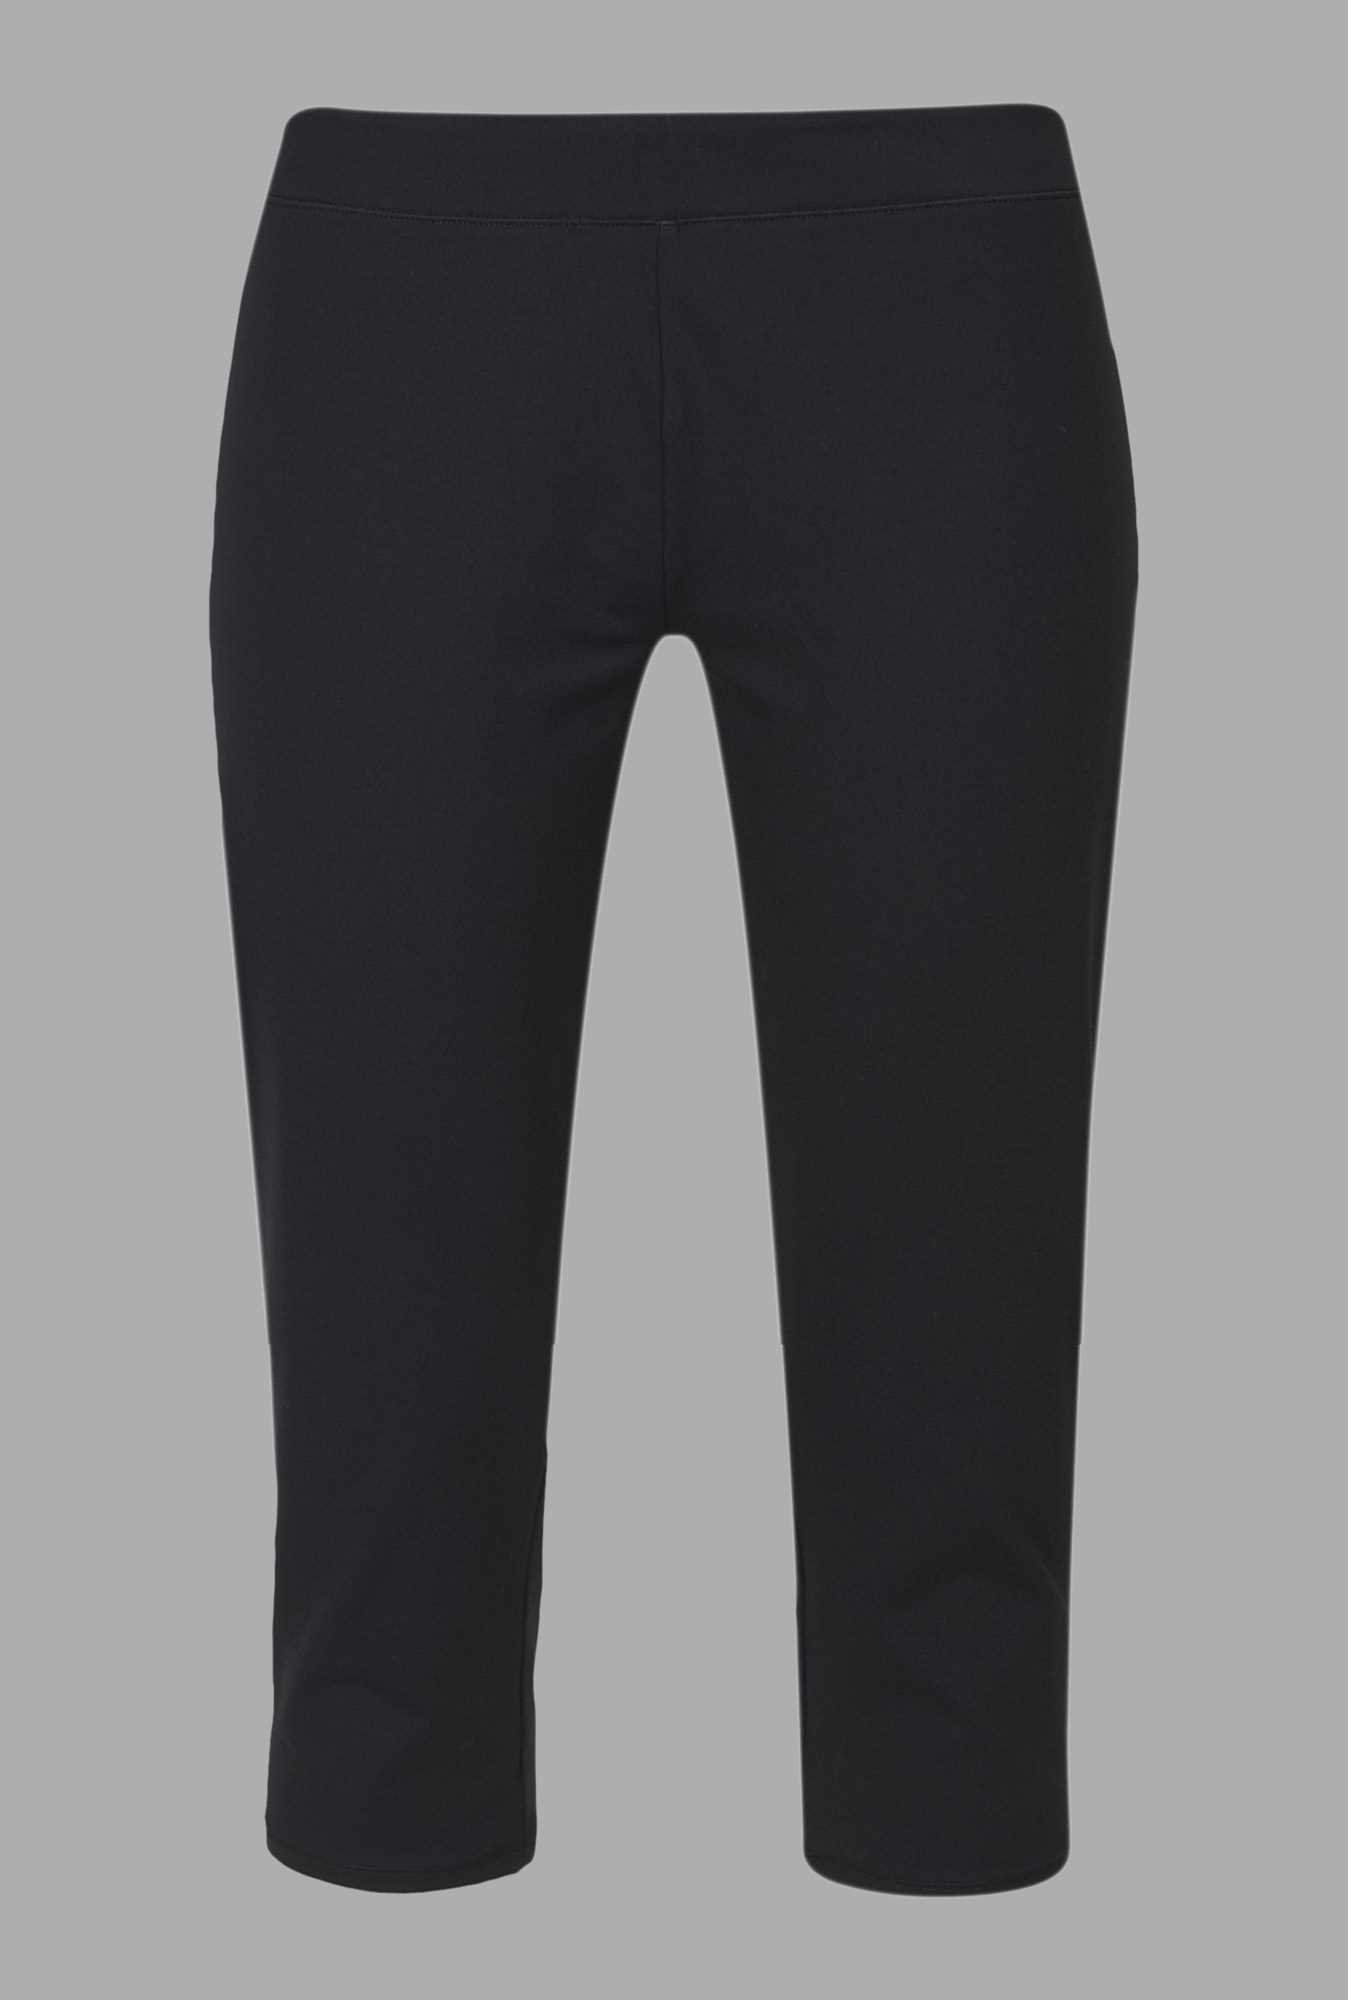 Doone Black Training Capri